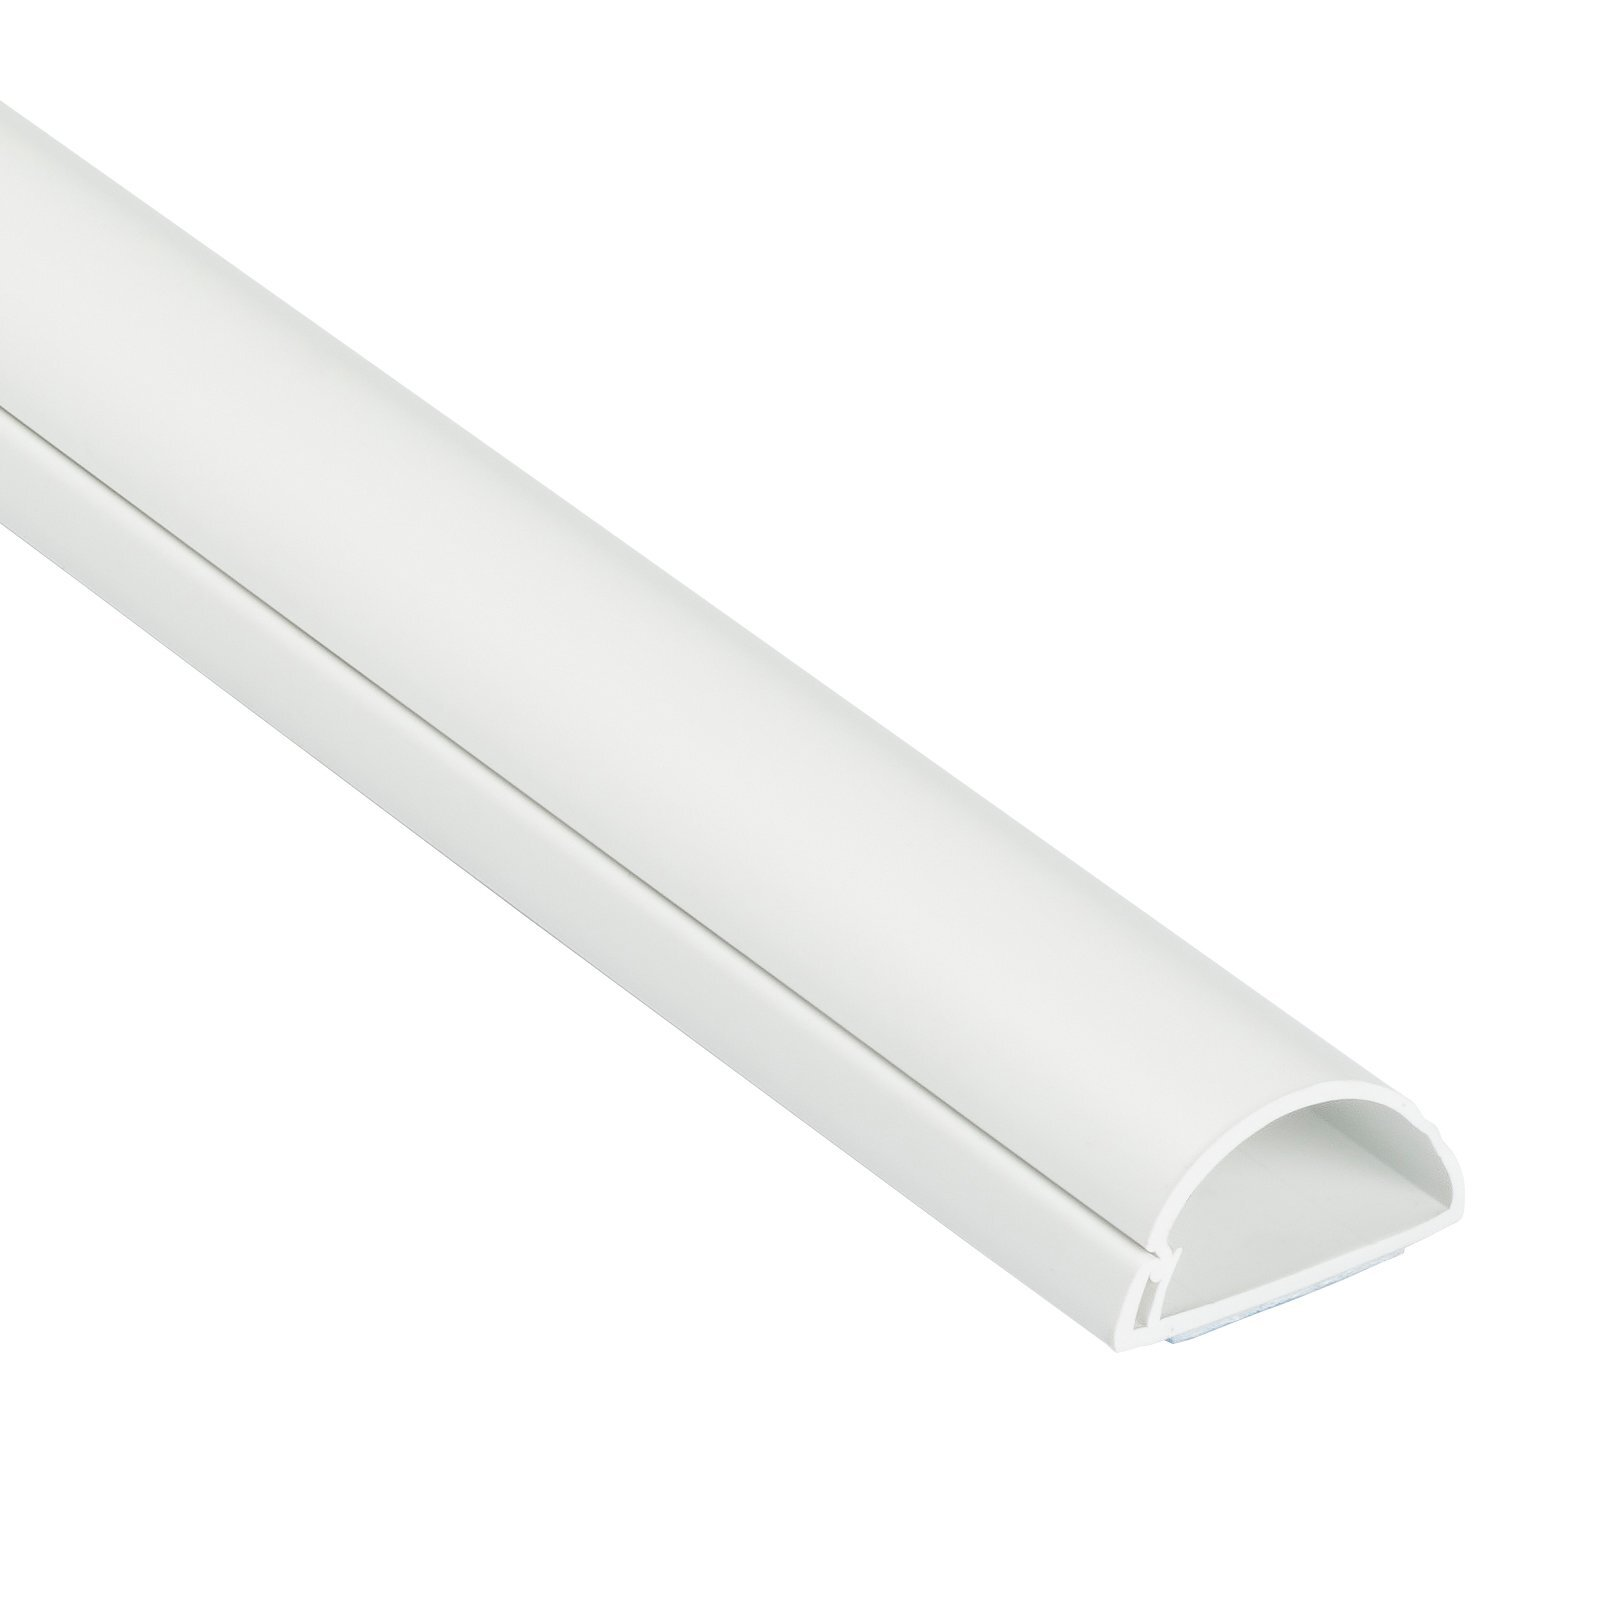 D-Line 30 x 15mm 2m White Adhesive Cable Management Cover